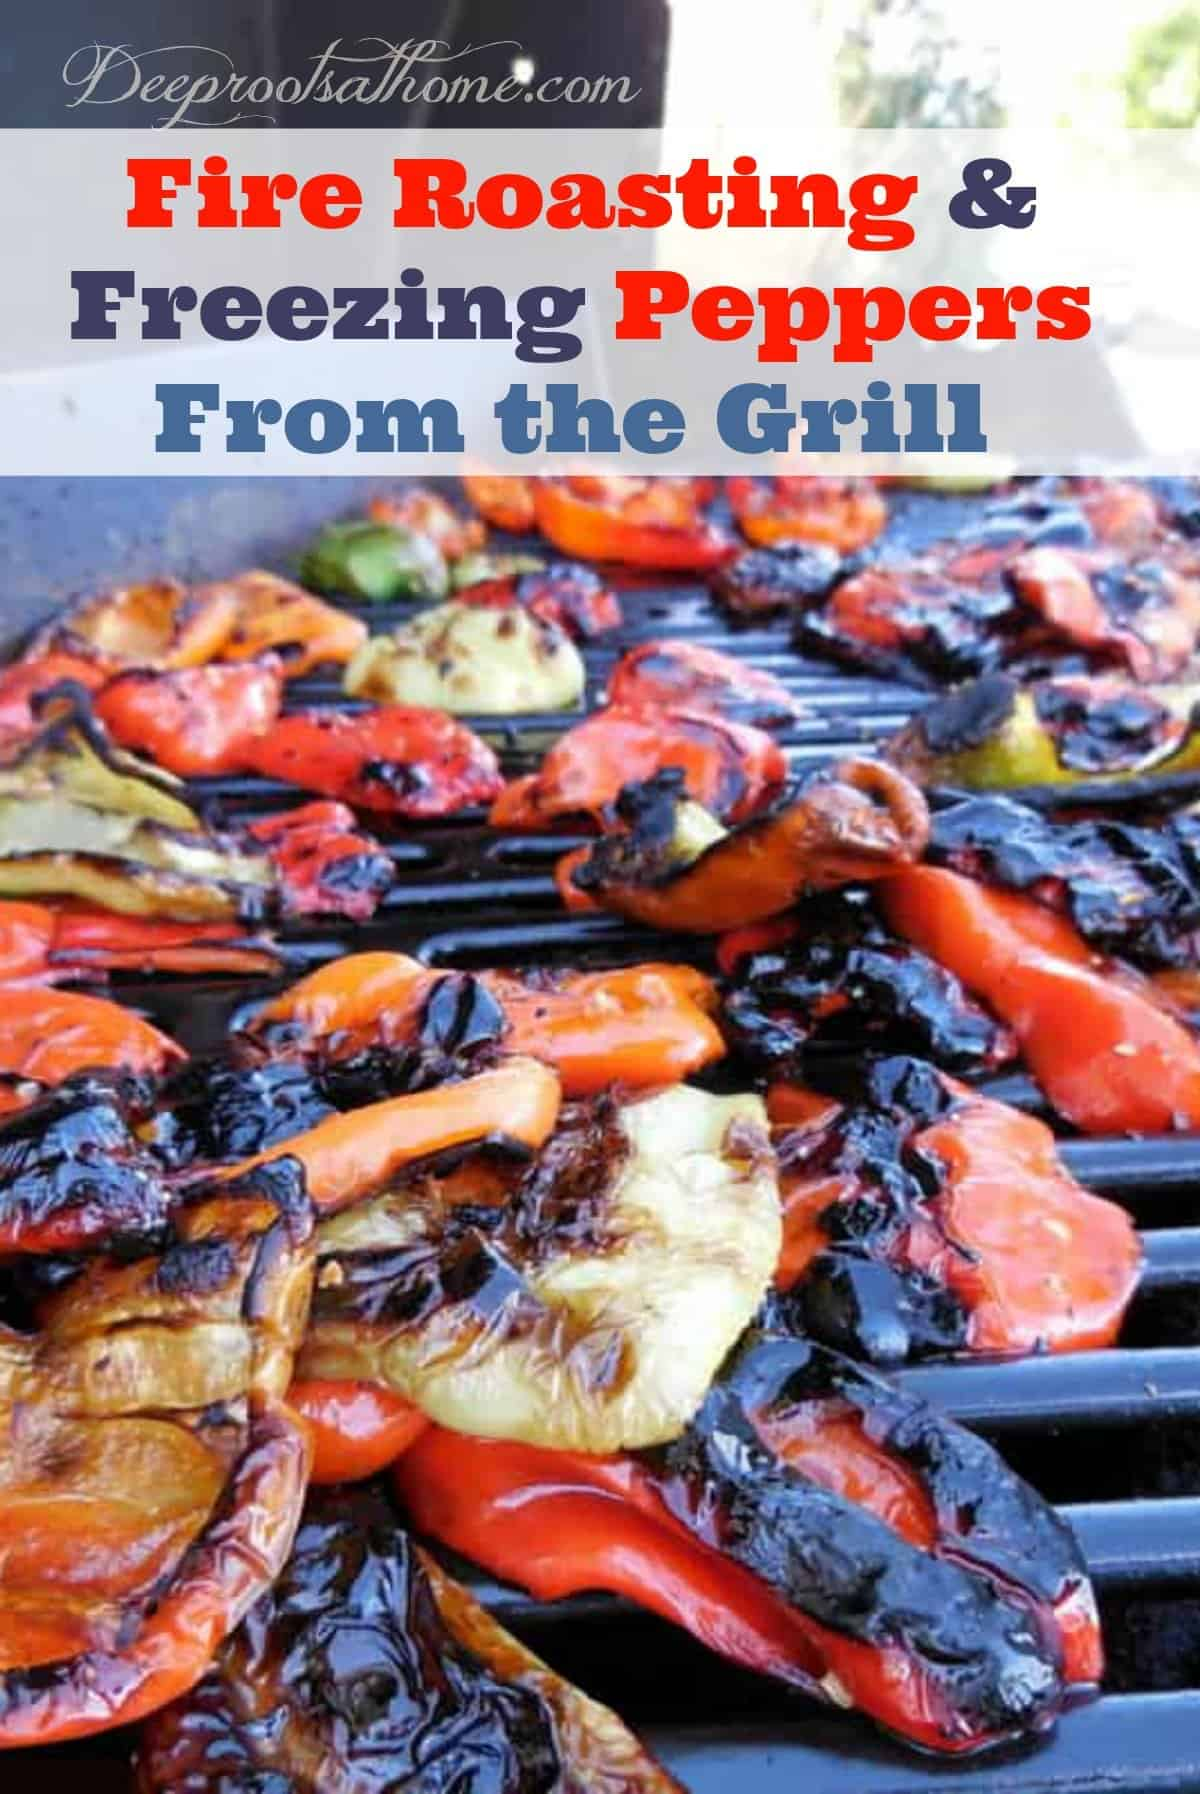 Fire Roasting And Freezing Colored Peppers From the Grill